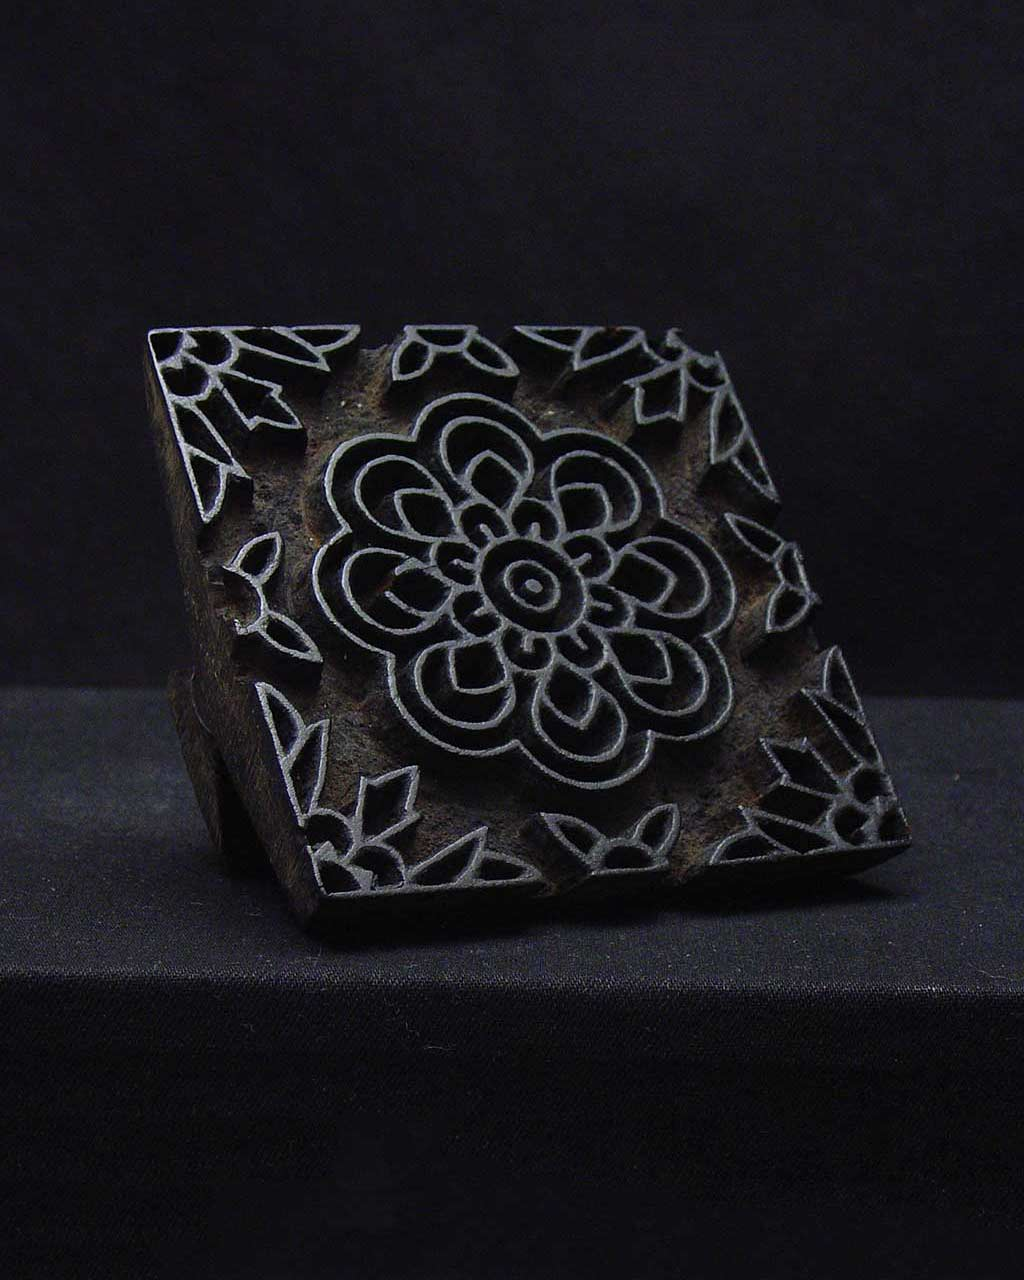 nearly square wooden block with floral pattern